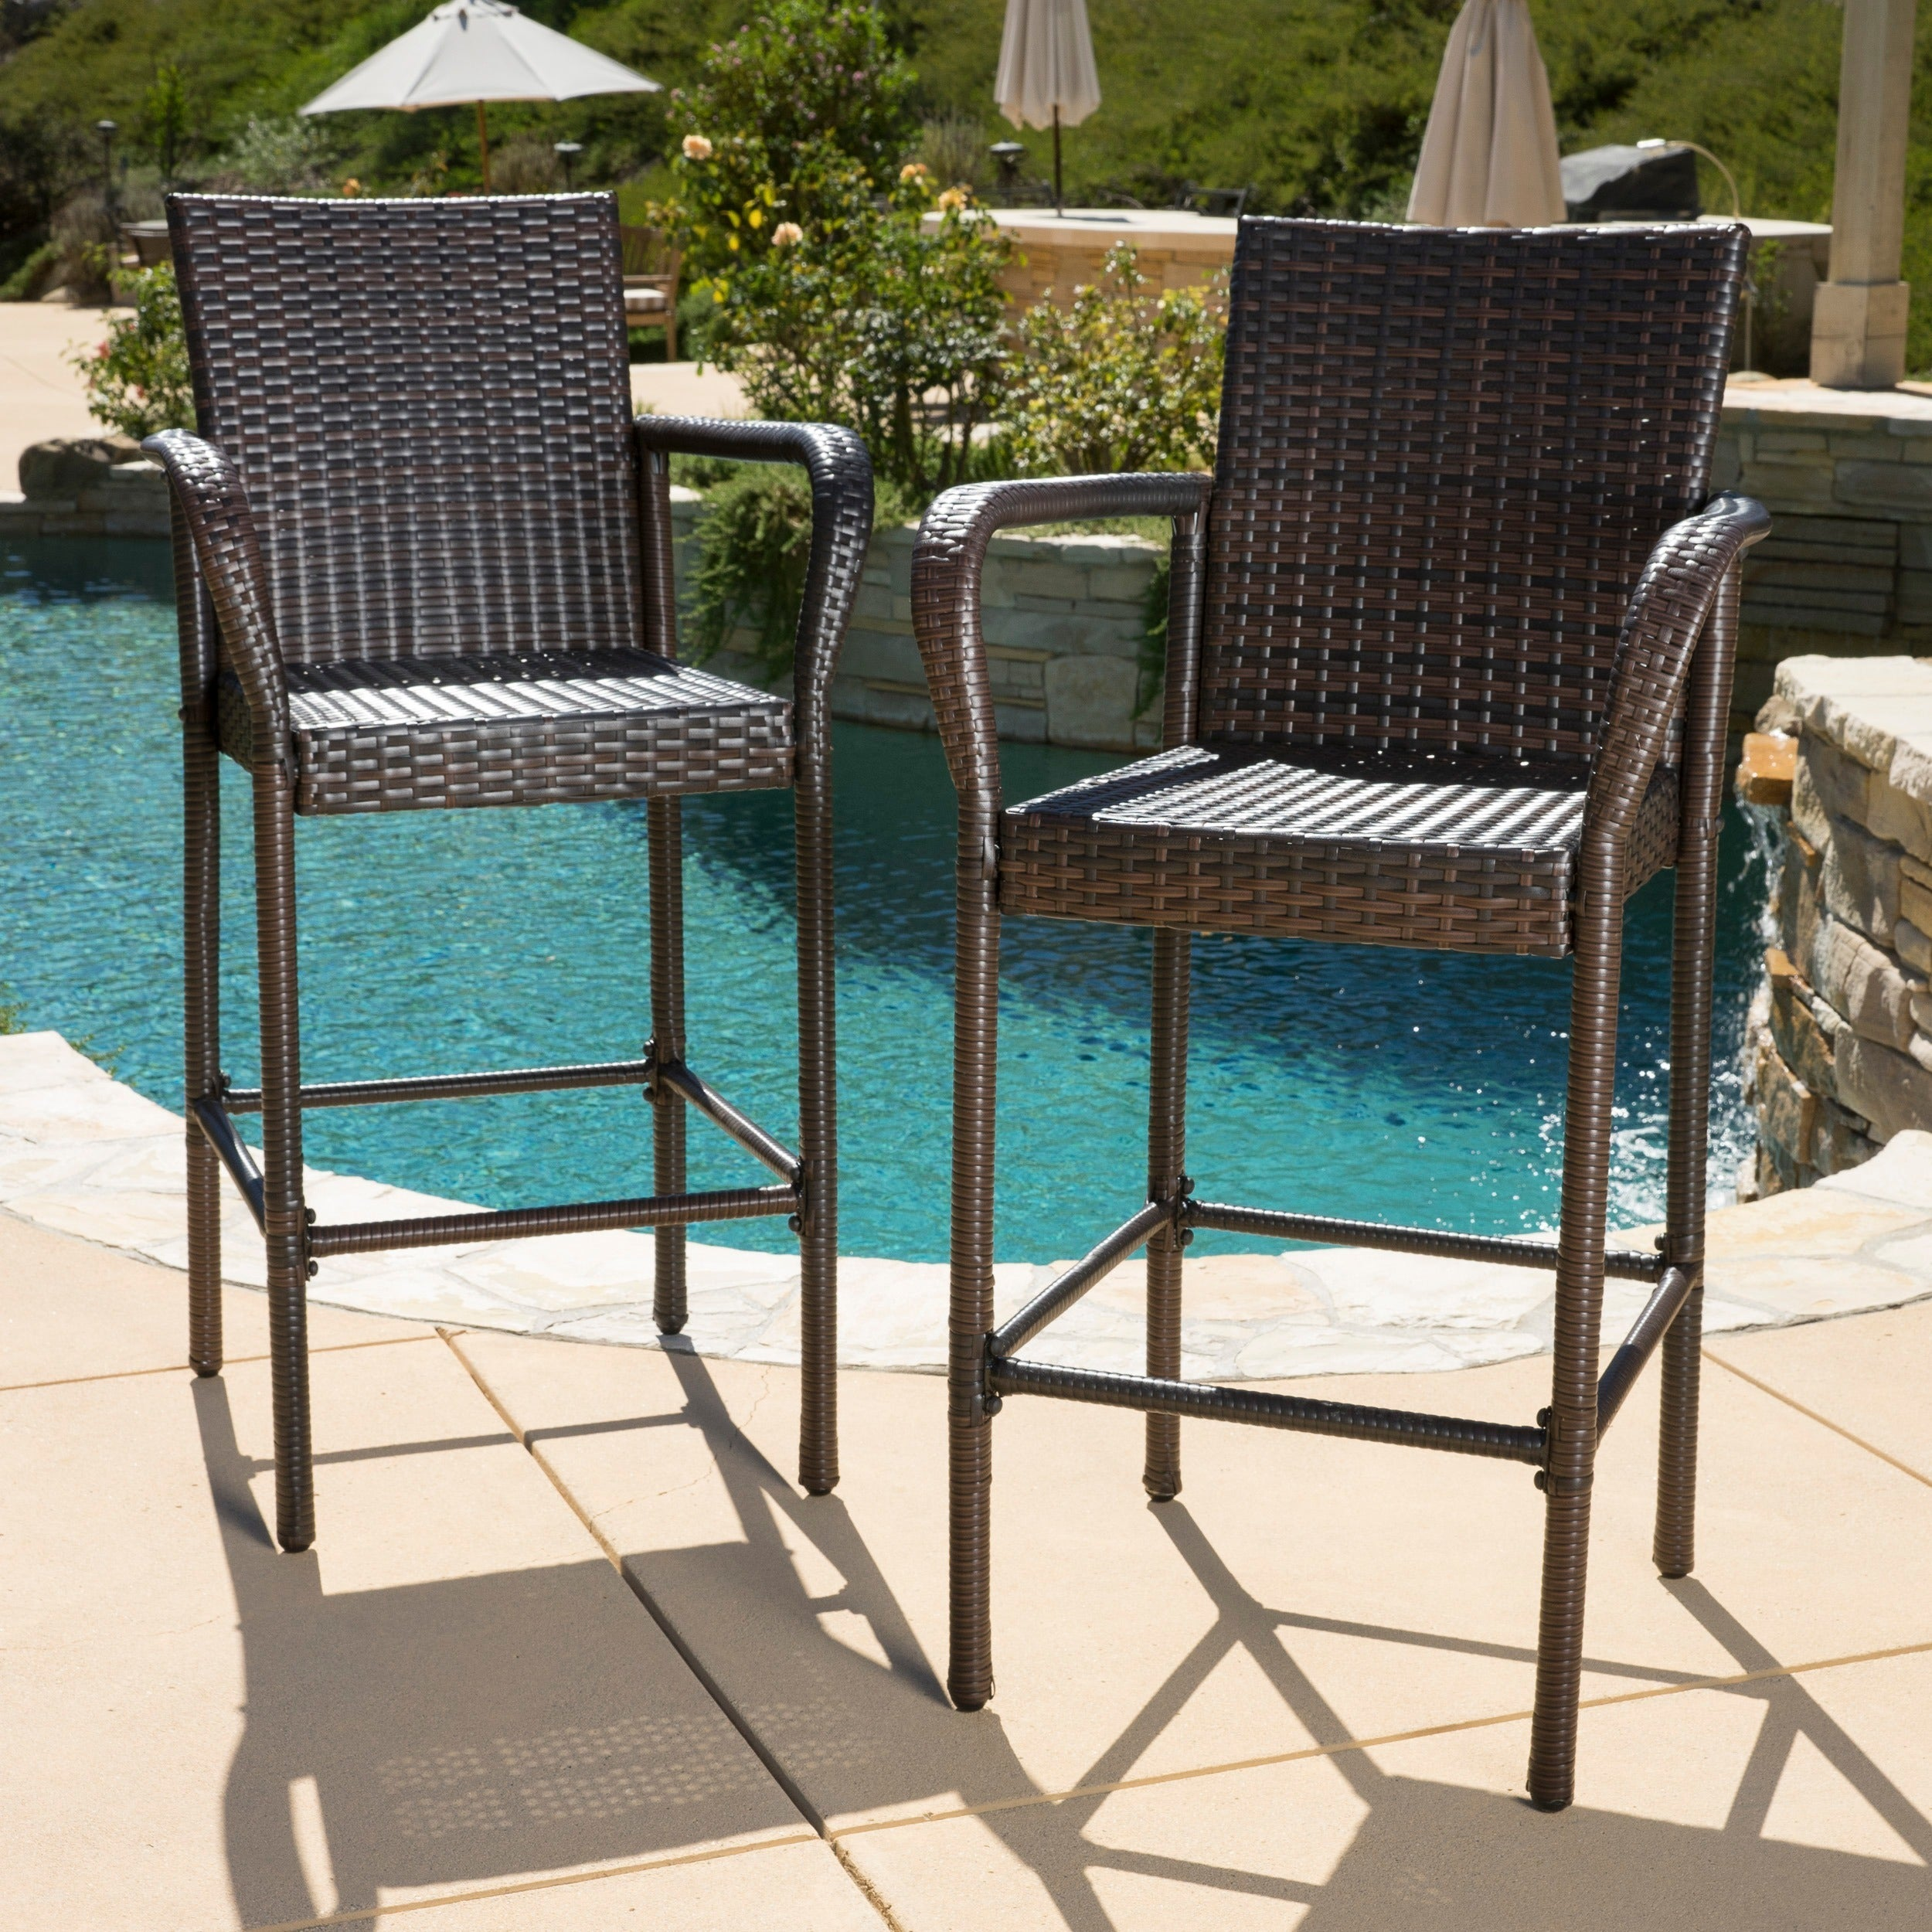 pin at check chairs cool pottery barn chair more outdoor com modern wicker furniture cacophonouscreations